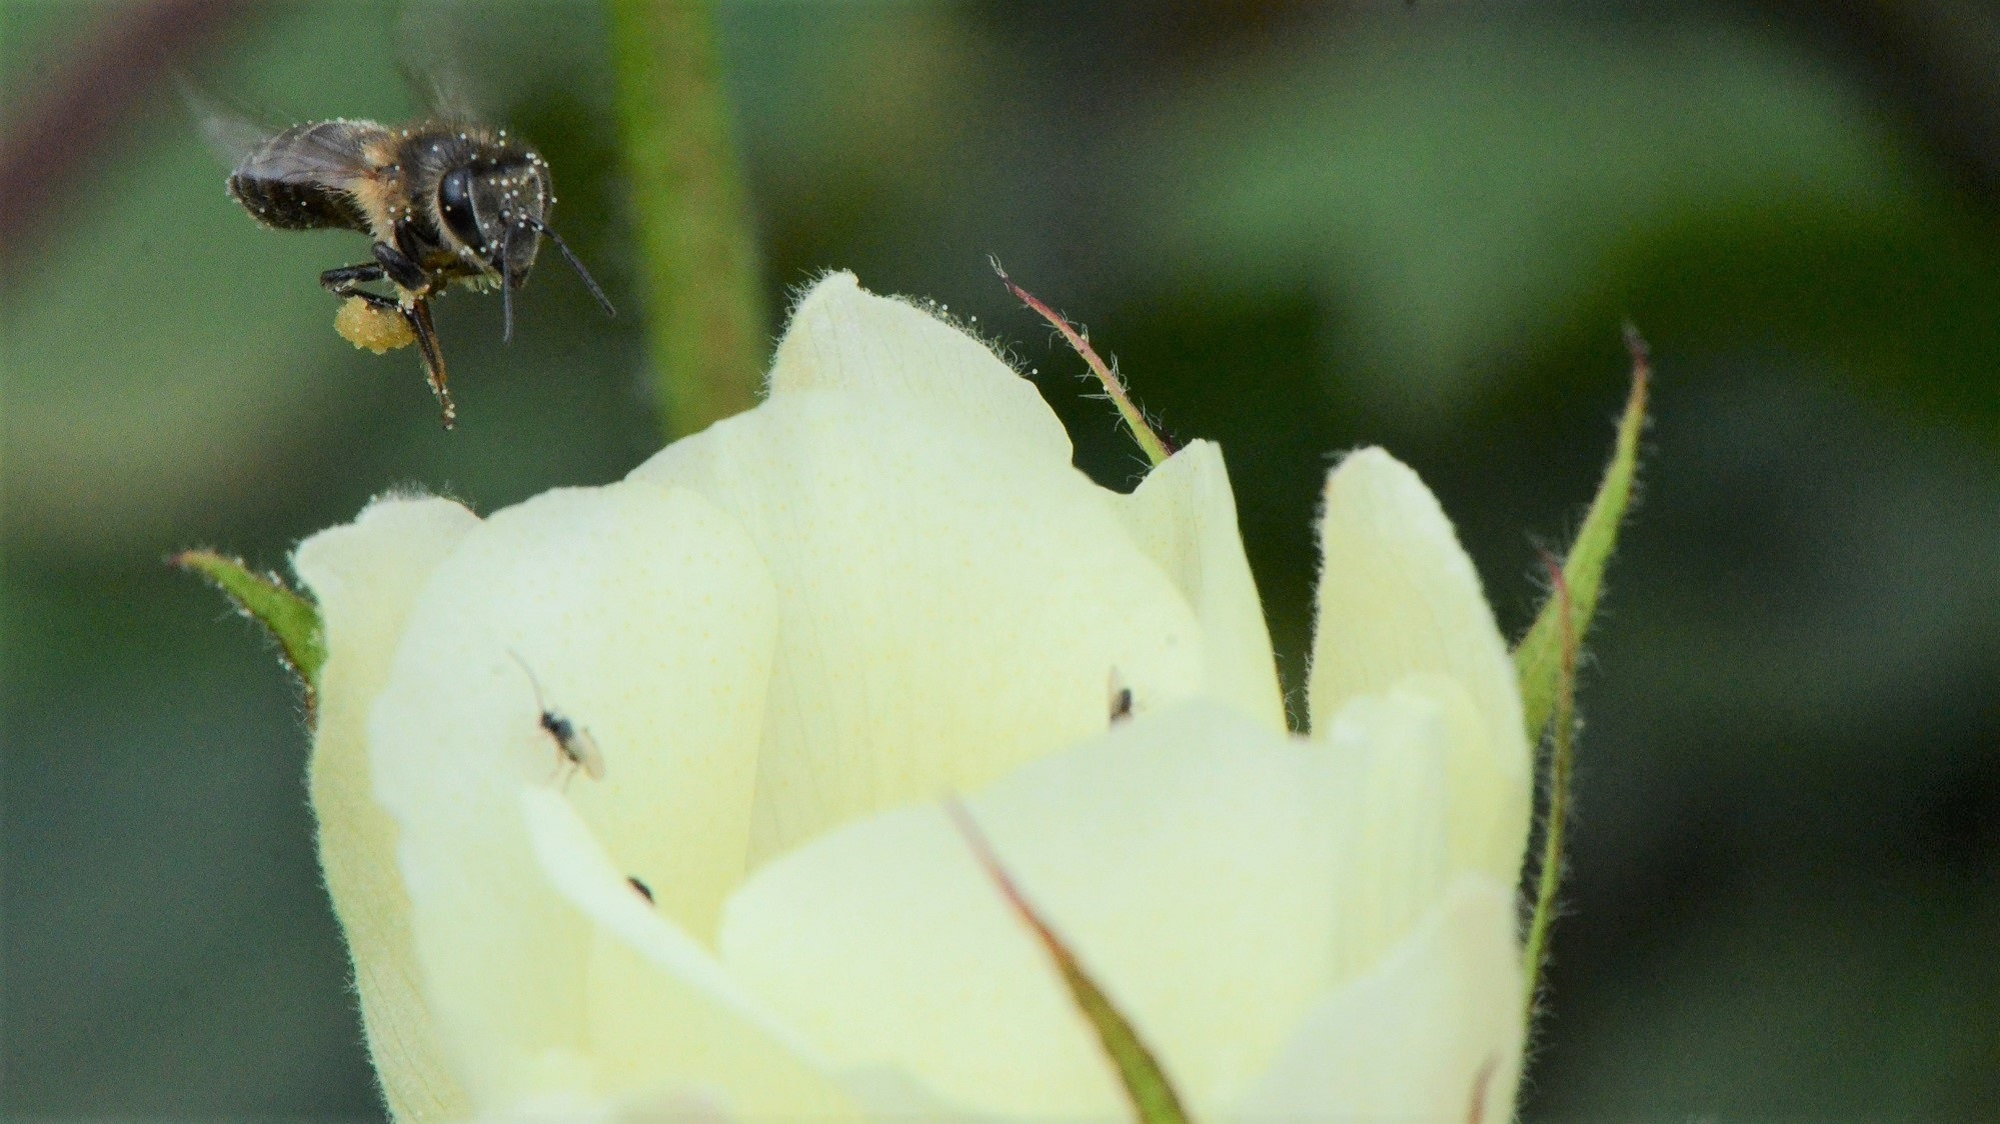 Bees are returning to Ethiopian cotton fields, providing extra income